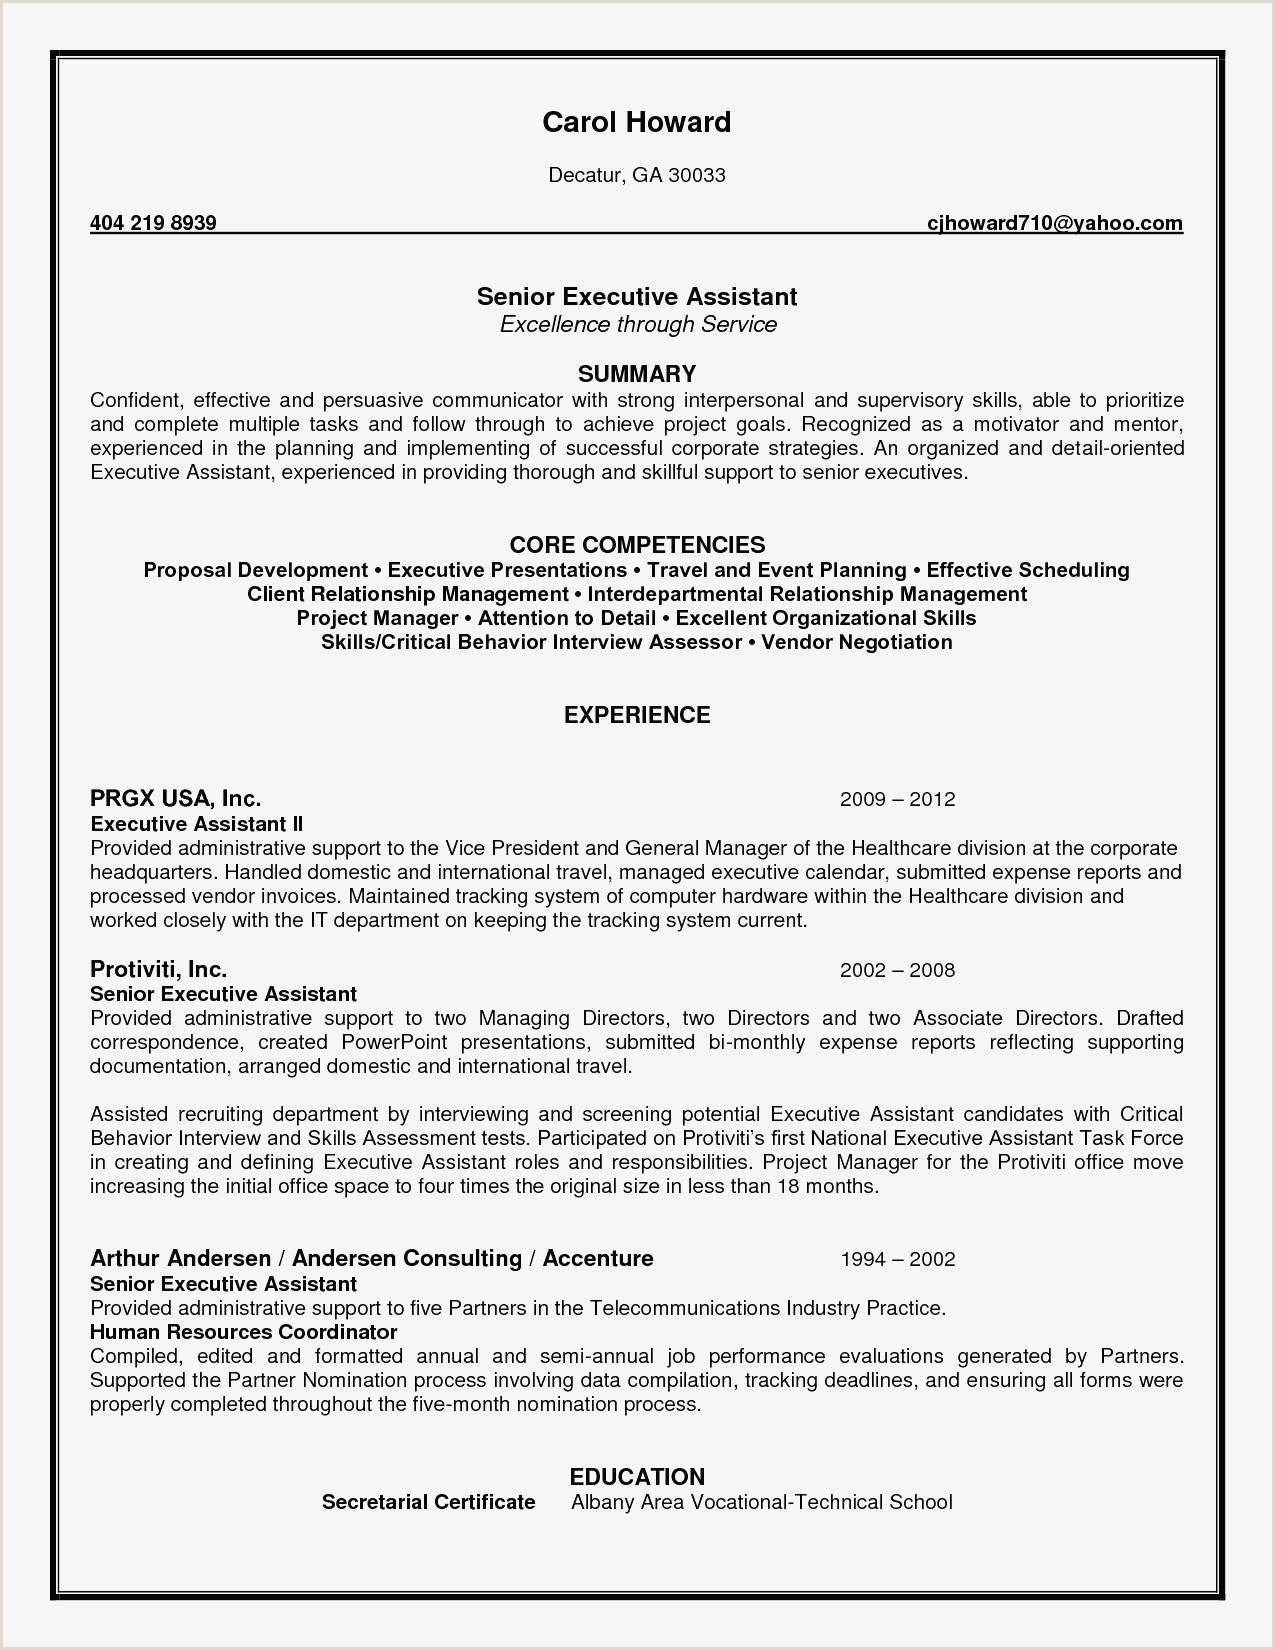 Cv Examples for First Job Cv Cadre Dirigeant Magnifique Simple Job Resume Examples